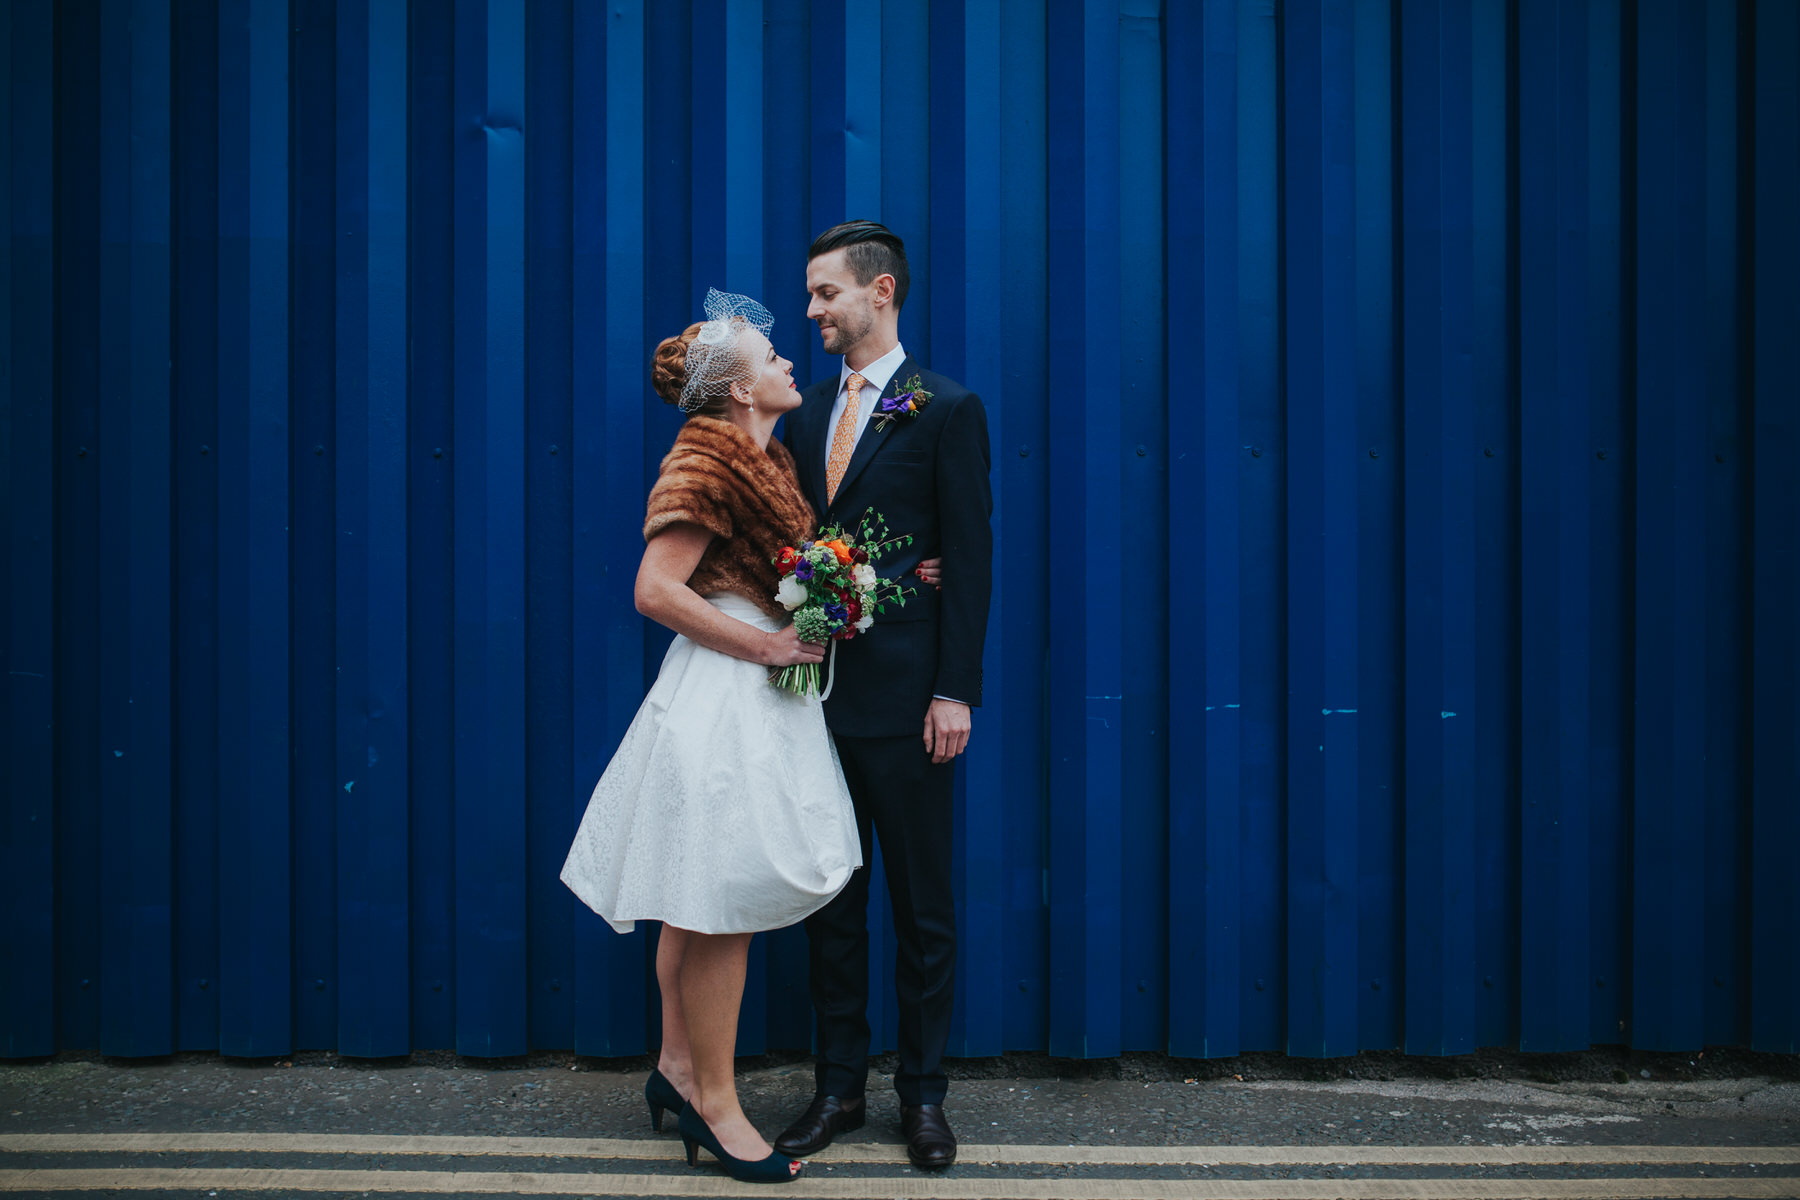 MS-Londesborough-Pub-wedding-Hackney-alternative-photographer-76-bright-blue-metal-background-urban-wedding-portrait-bride-groom-under-railway-bridge.jpg